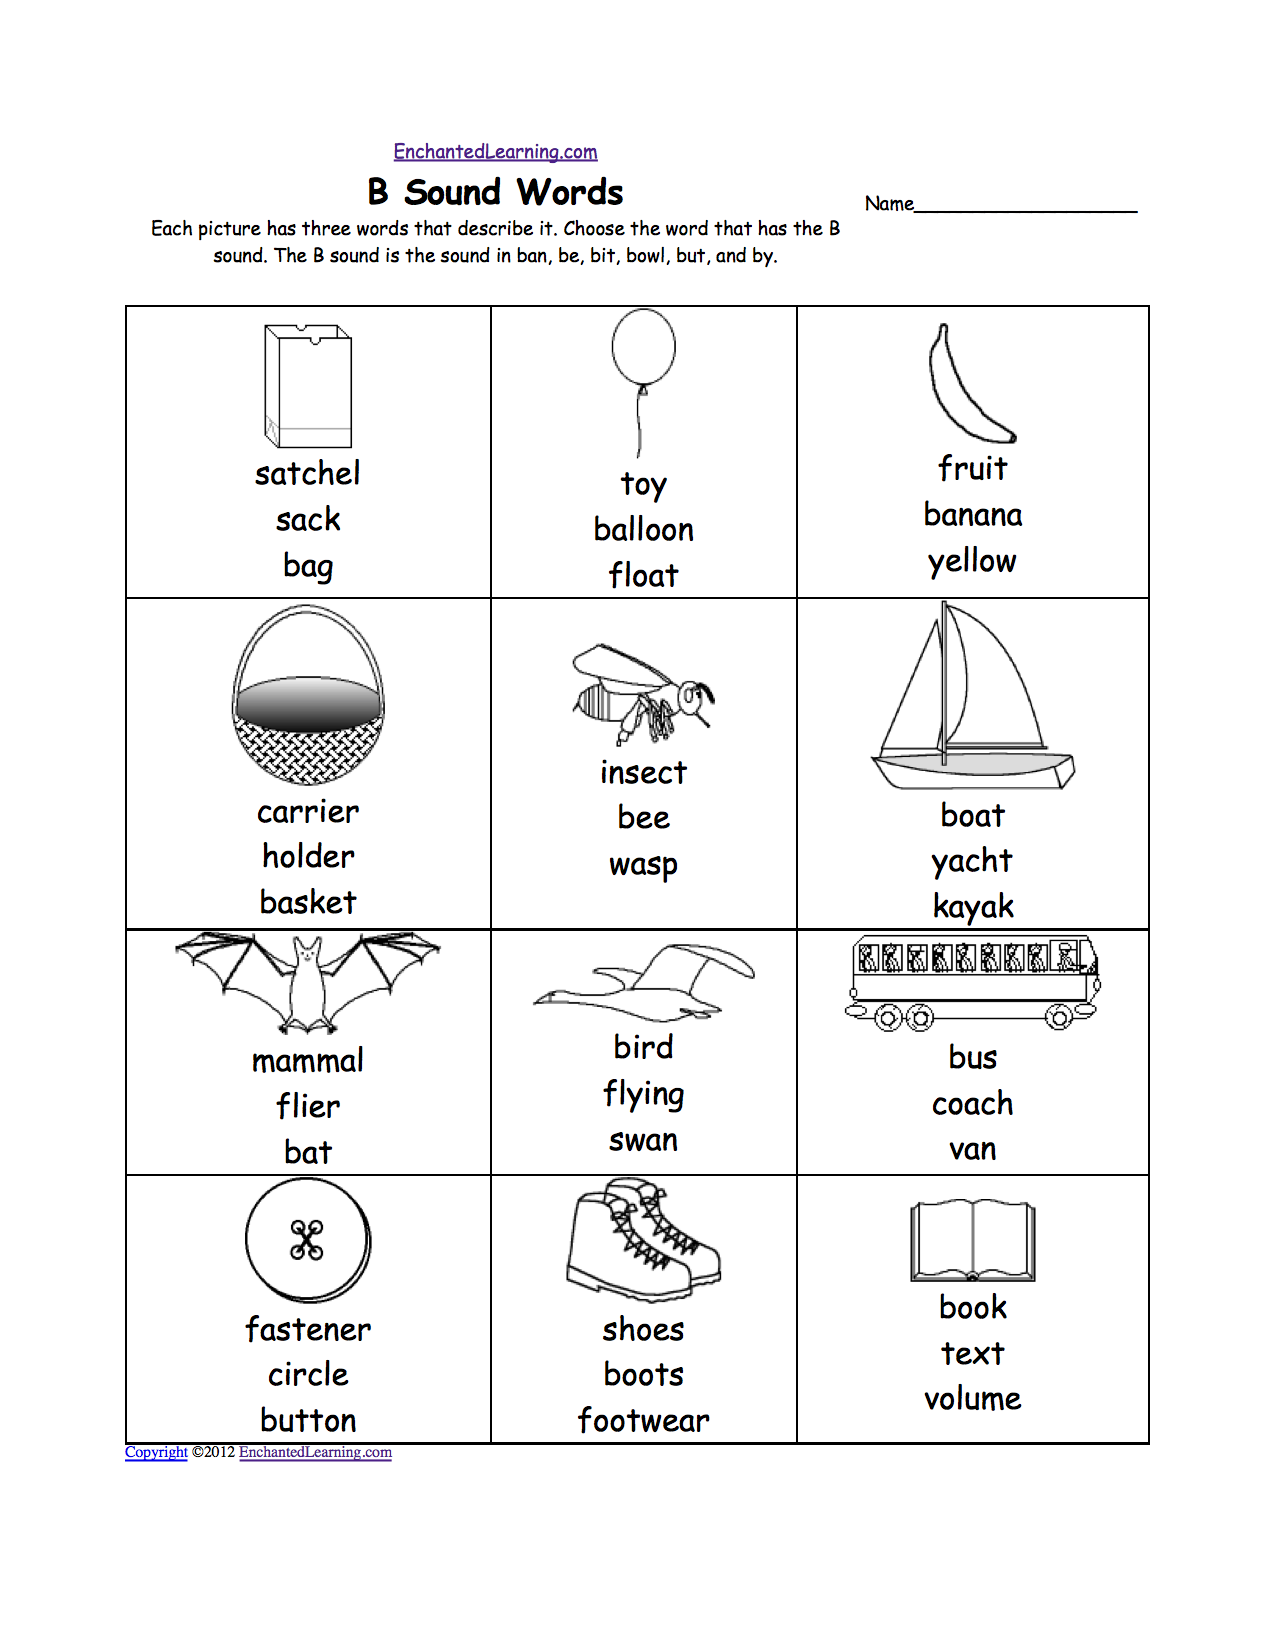 Aldiablosus  Stunning Phonics Worksheets Multiple Choice Worksheets To Print  With Fair Quotbquot Sound Phonics Worksheet Multiple Choice Each Picture Has Three Words That Describe It Choose The Word That Has A Quotbquot Sound The Quotbquot Sound Is The Sound  With Captivating Sig Fig Practice Worksheet Also Th Grade Worksheets In Addition Area And Perimeter Worksheet And Fractions Worksheet As Well As Trigonometric Ratios Worksheet Additionally Kindergarten Subtraction Worksheets From Enchantedlearningcom With Aldiablosus  Fair Phonics Worksheets Multiple Choice Worksheets To Print  With Captivating Quotbquot Sound Phonics Worksheet Multiple Choice Each Picture Has Three Words That Describe It Choose The Word That Has A Quotbquot Sound The Quotbquot Sound Is The Sound  And Stunning Sig Fig Practice Worksheet Also Th Grade Worksheets In Addition Area And Perimeter Worksheet From Enchantedlearningcom